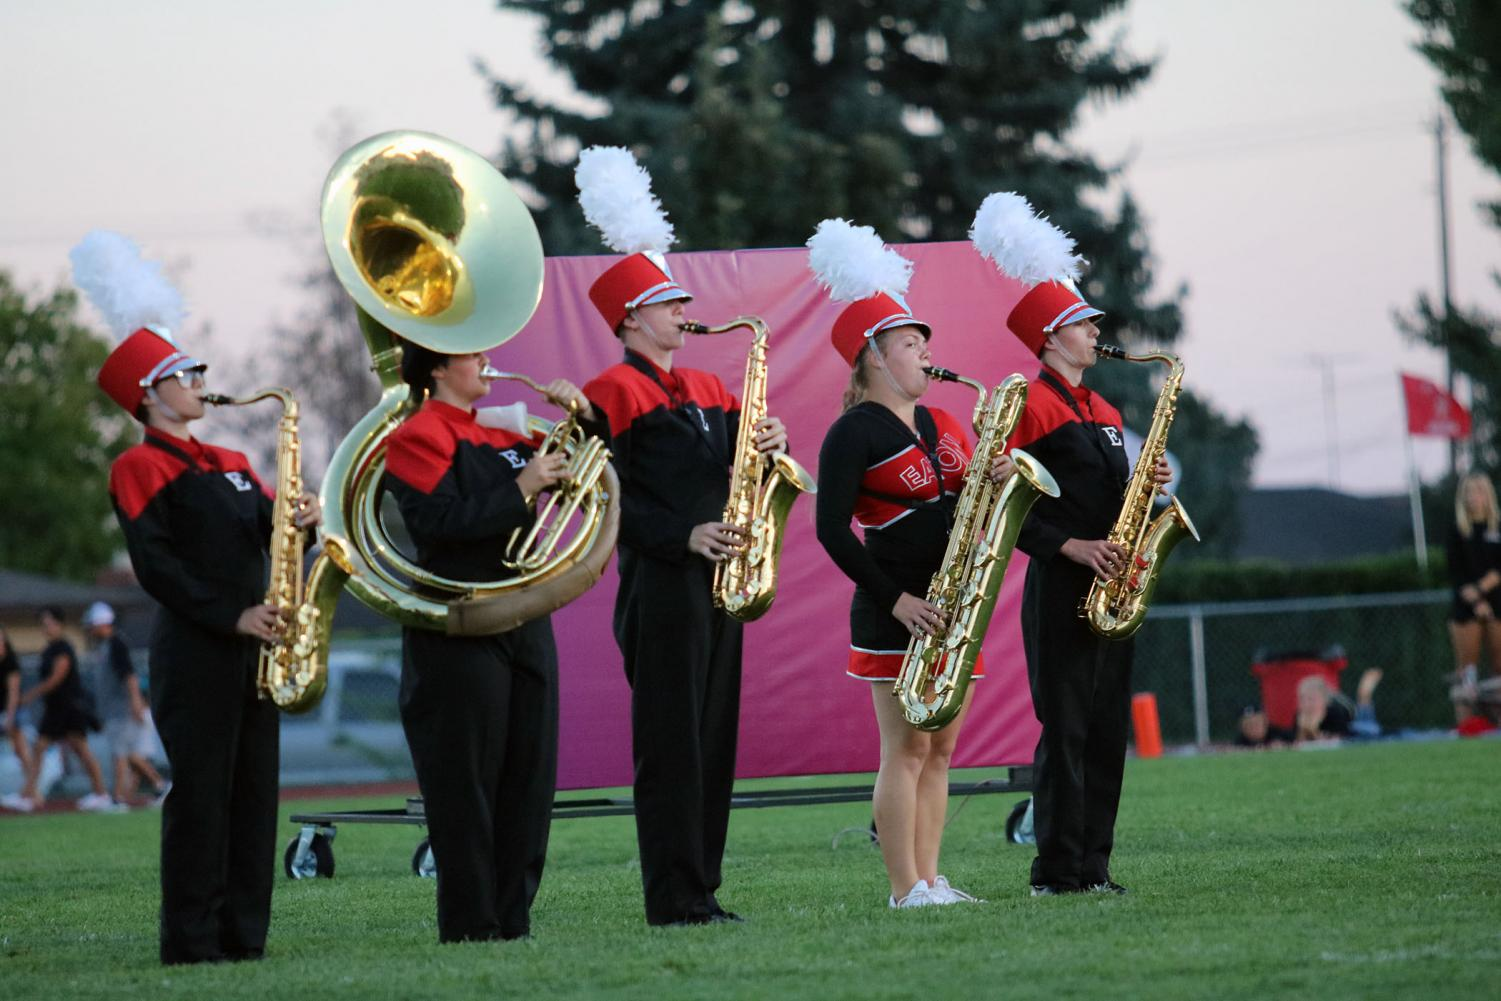 Marching band members Lexi Nigro (20), Klara Cordova (20), Dylan Davis (21), Janae Jarnagin (19) and Jonathan Brantner (21) perform their show